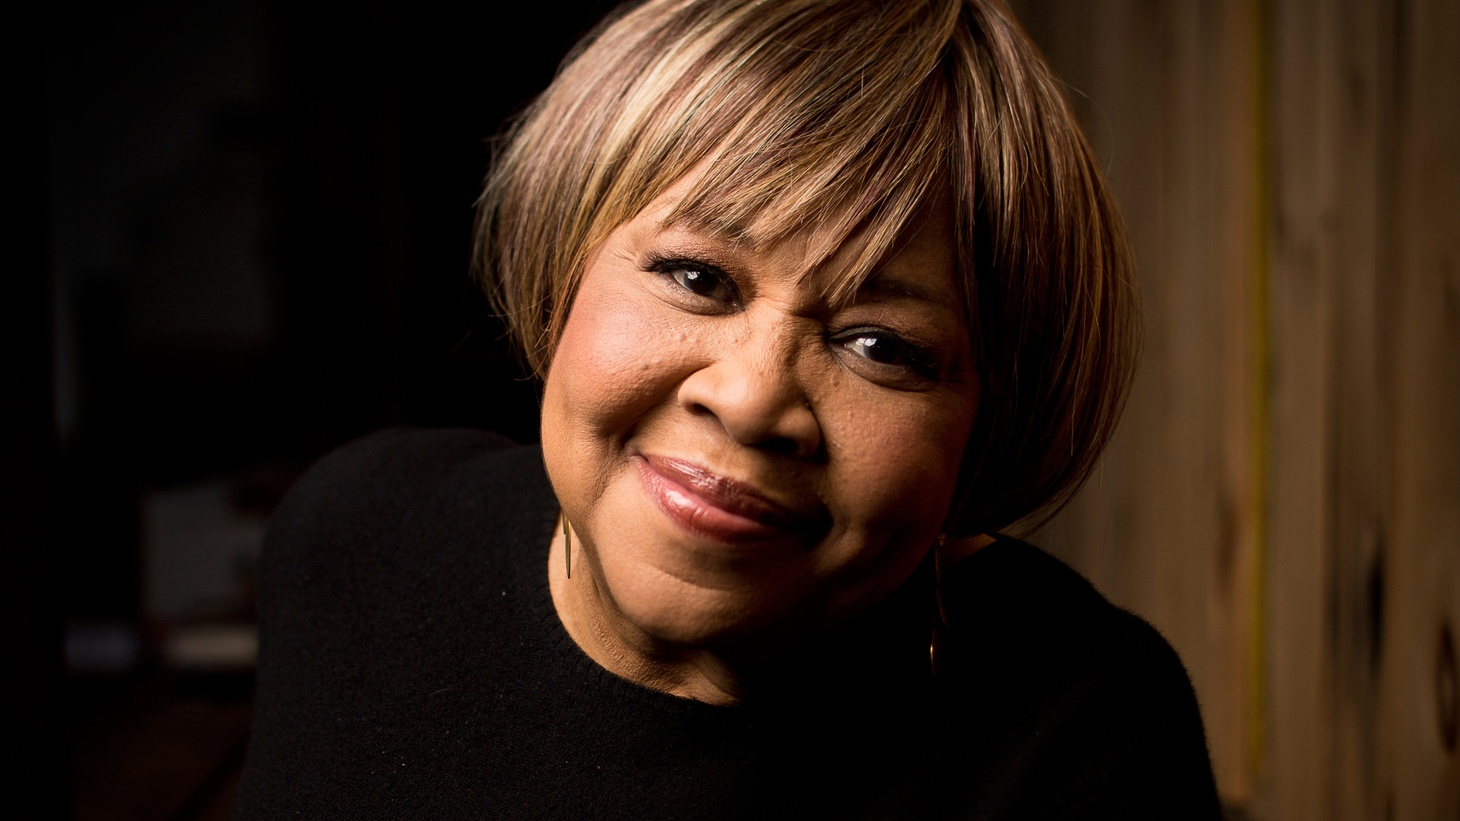 In her 70's, Mavis Staples shows no sign of slowing down after her recent stint at Coachella. And by the sound of it a dozen artists were summoned to write songs for her.